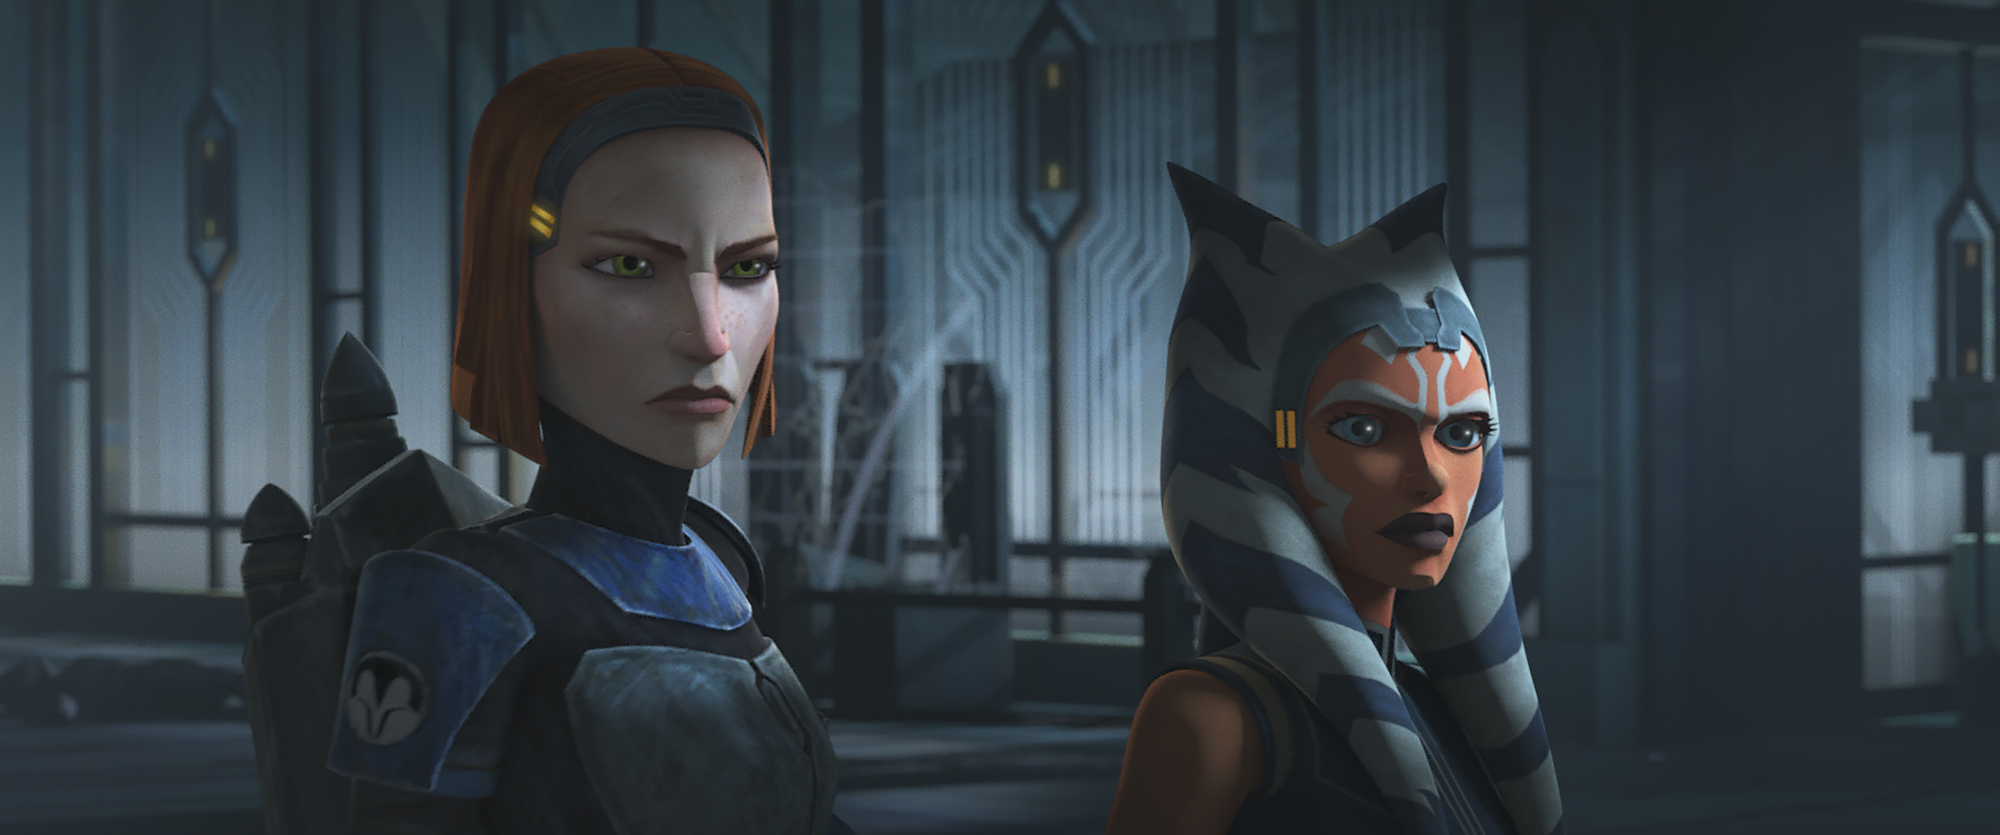 Bo-Katan and Ahsoka Tano during the Siege of Mandalore in Season 7 of 'The Clone Wars'